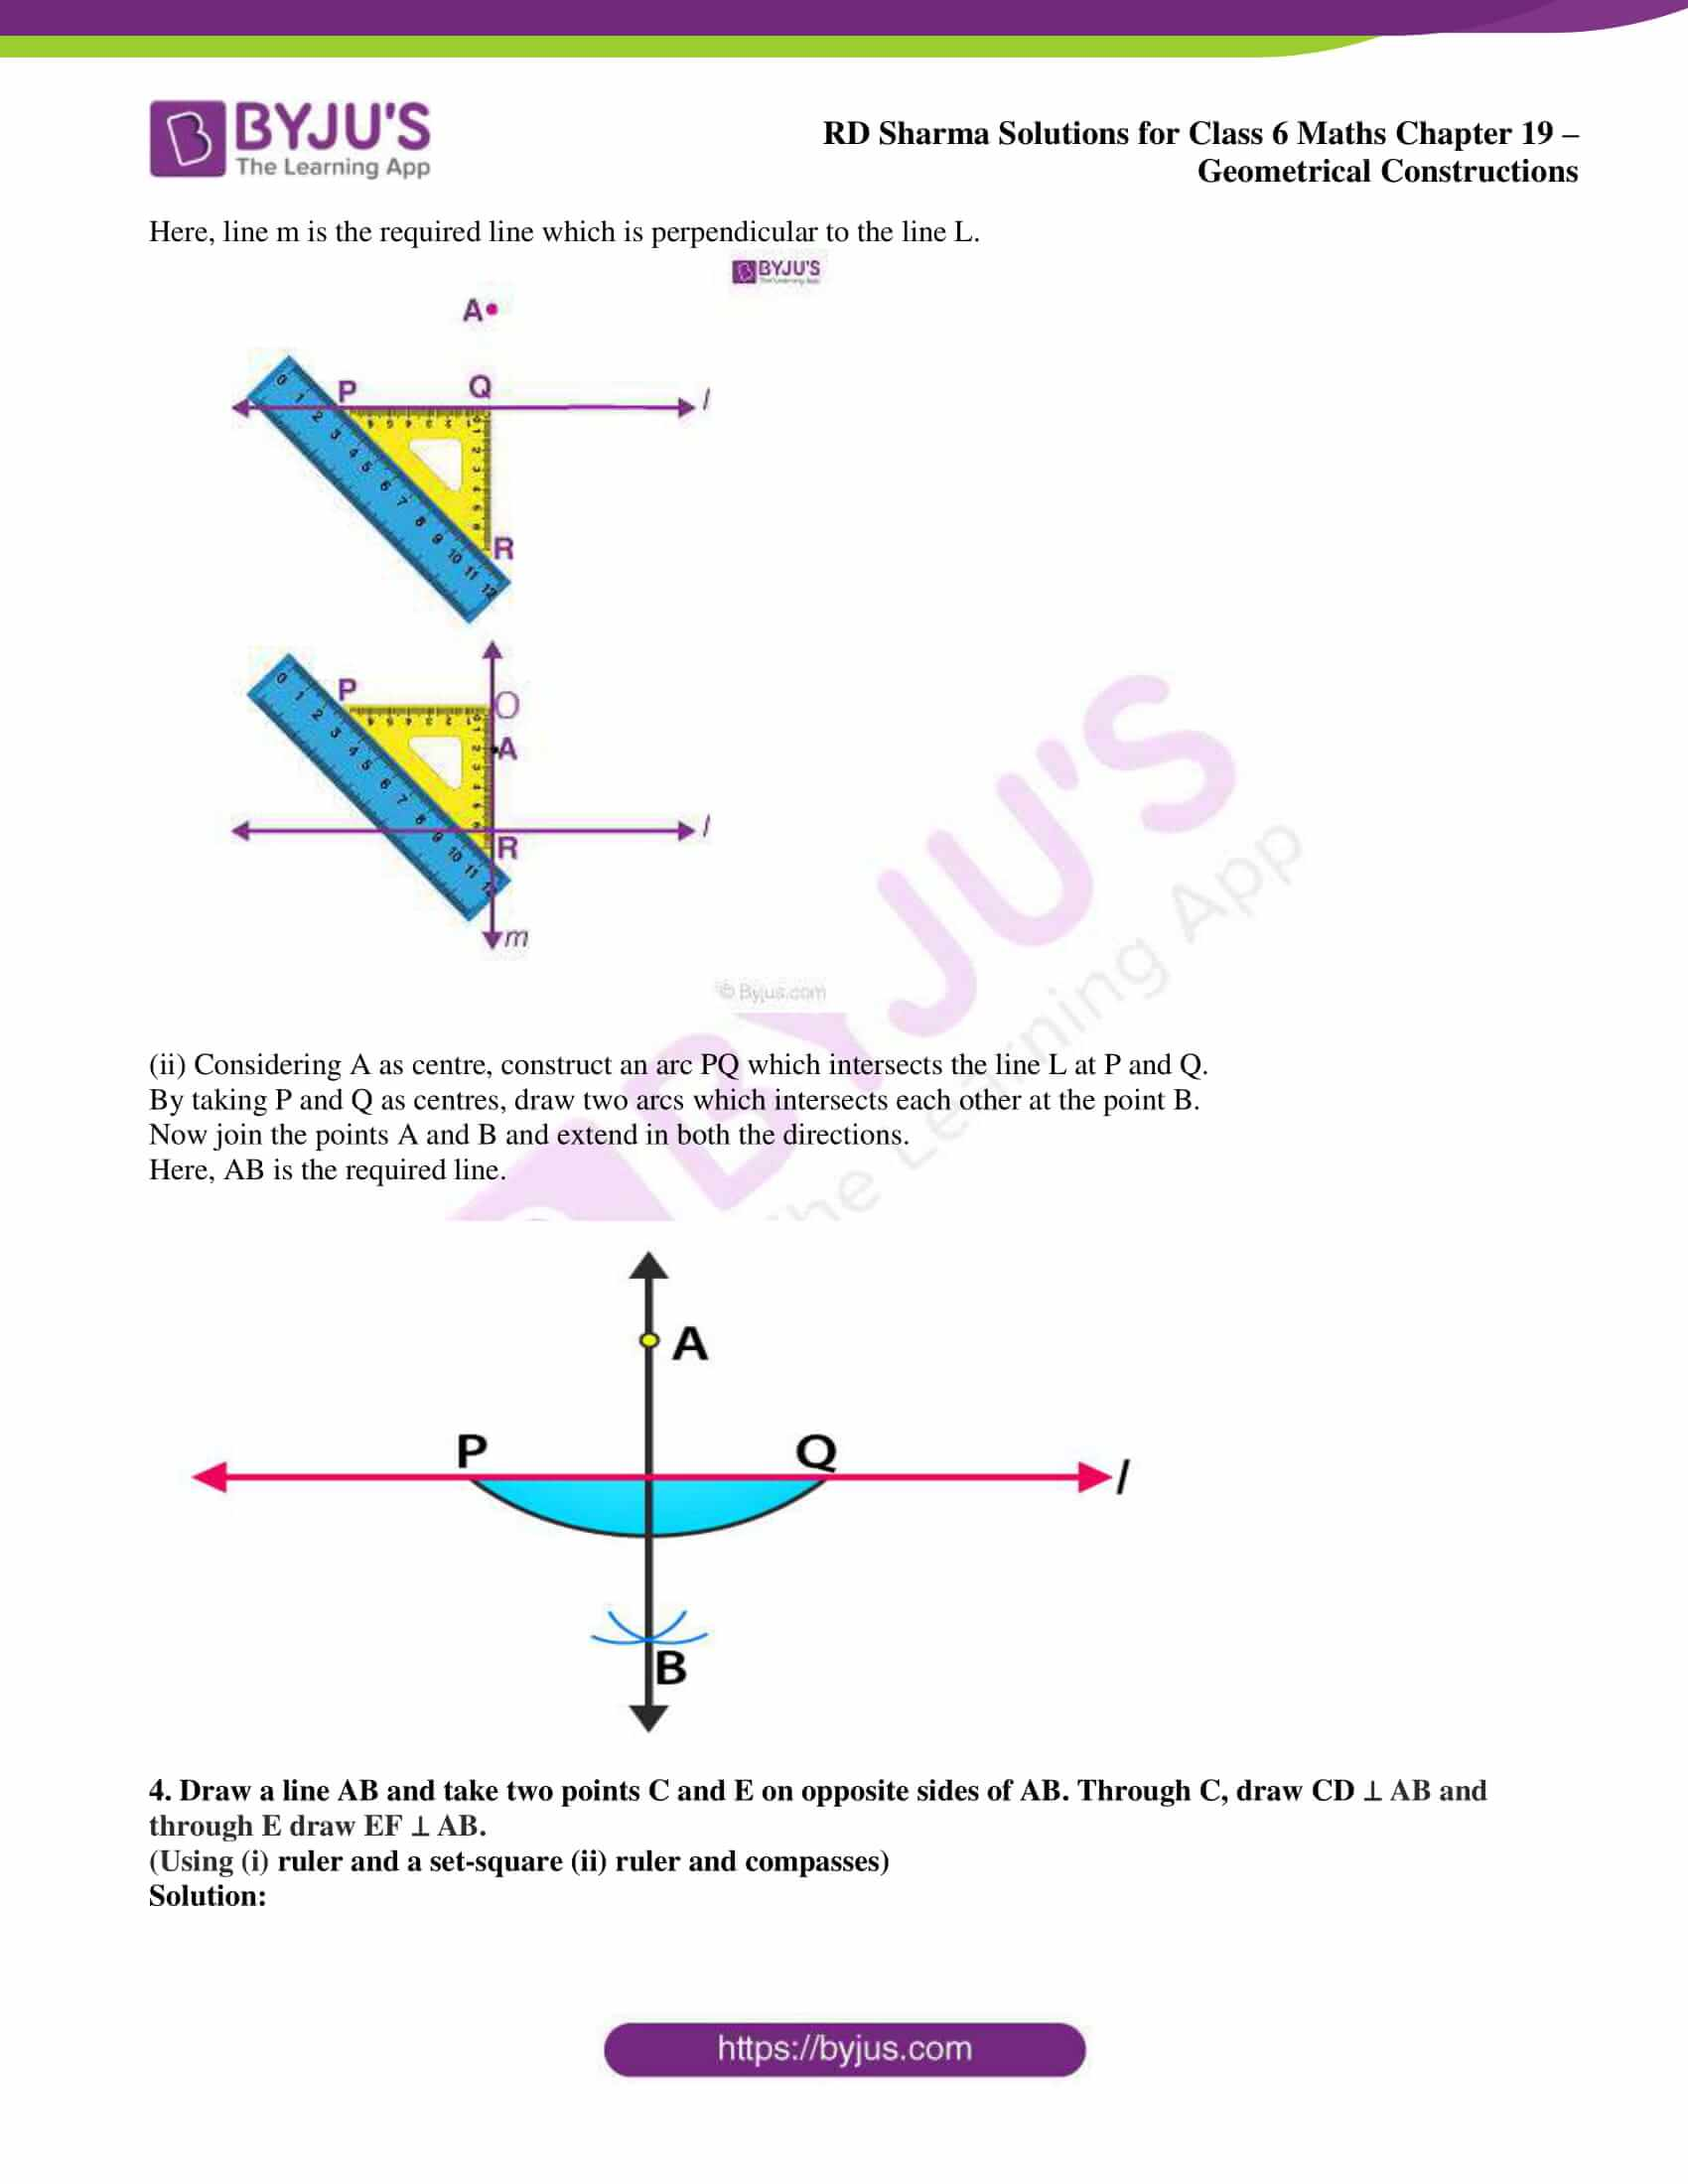 rd sharma solutions nov2020 class 6 maths chapter 19 exercise 2 3